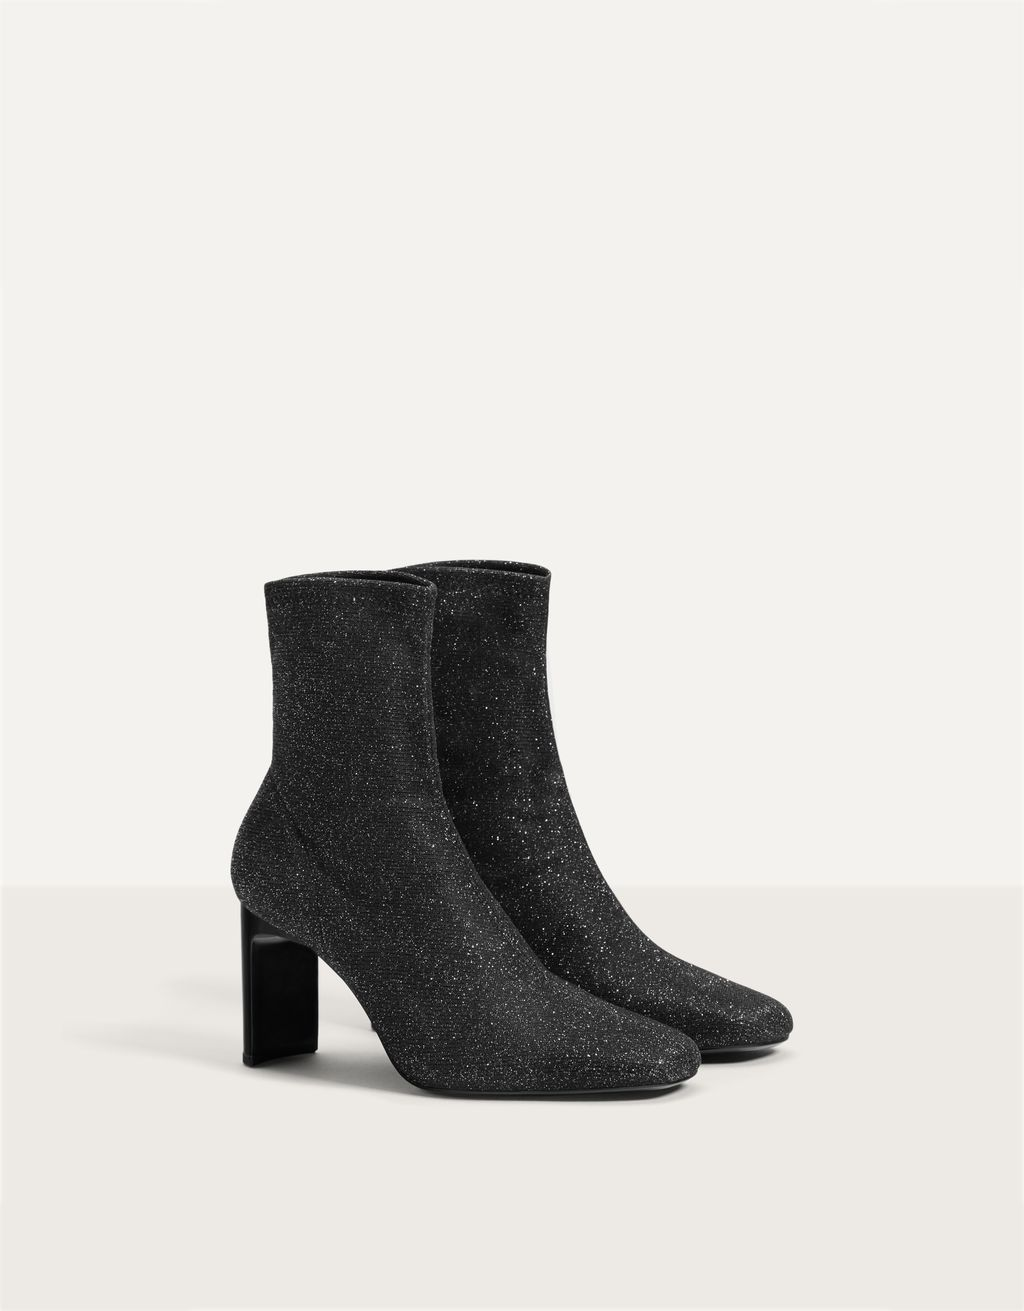 Sock-style high-heel ankle boots with shimmer